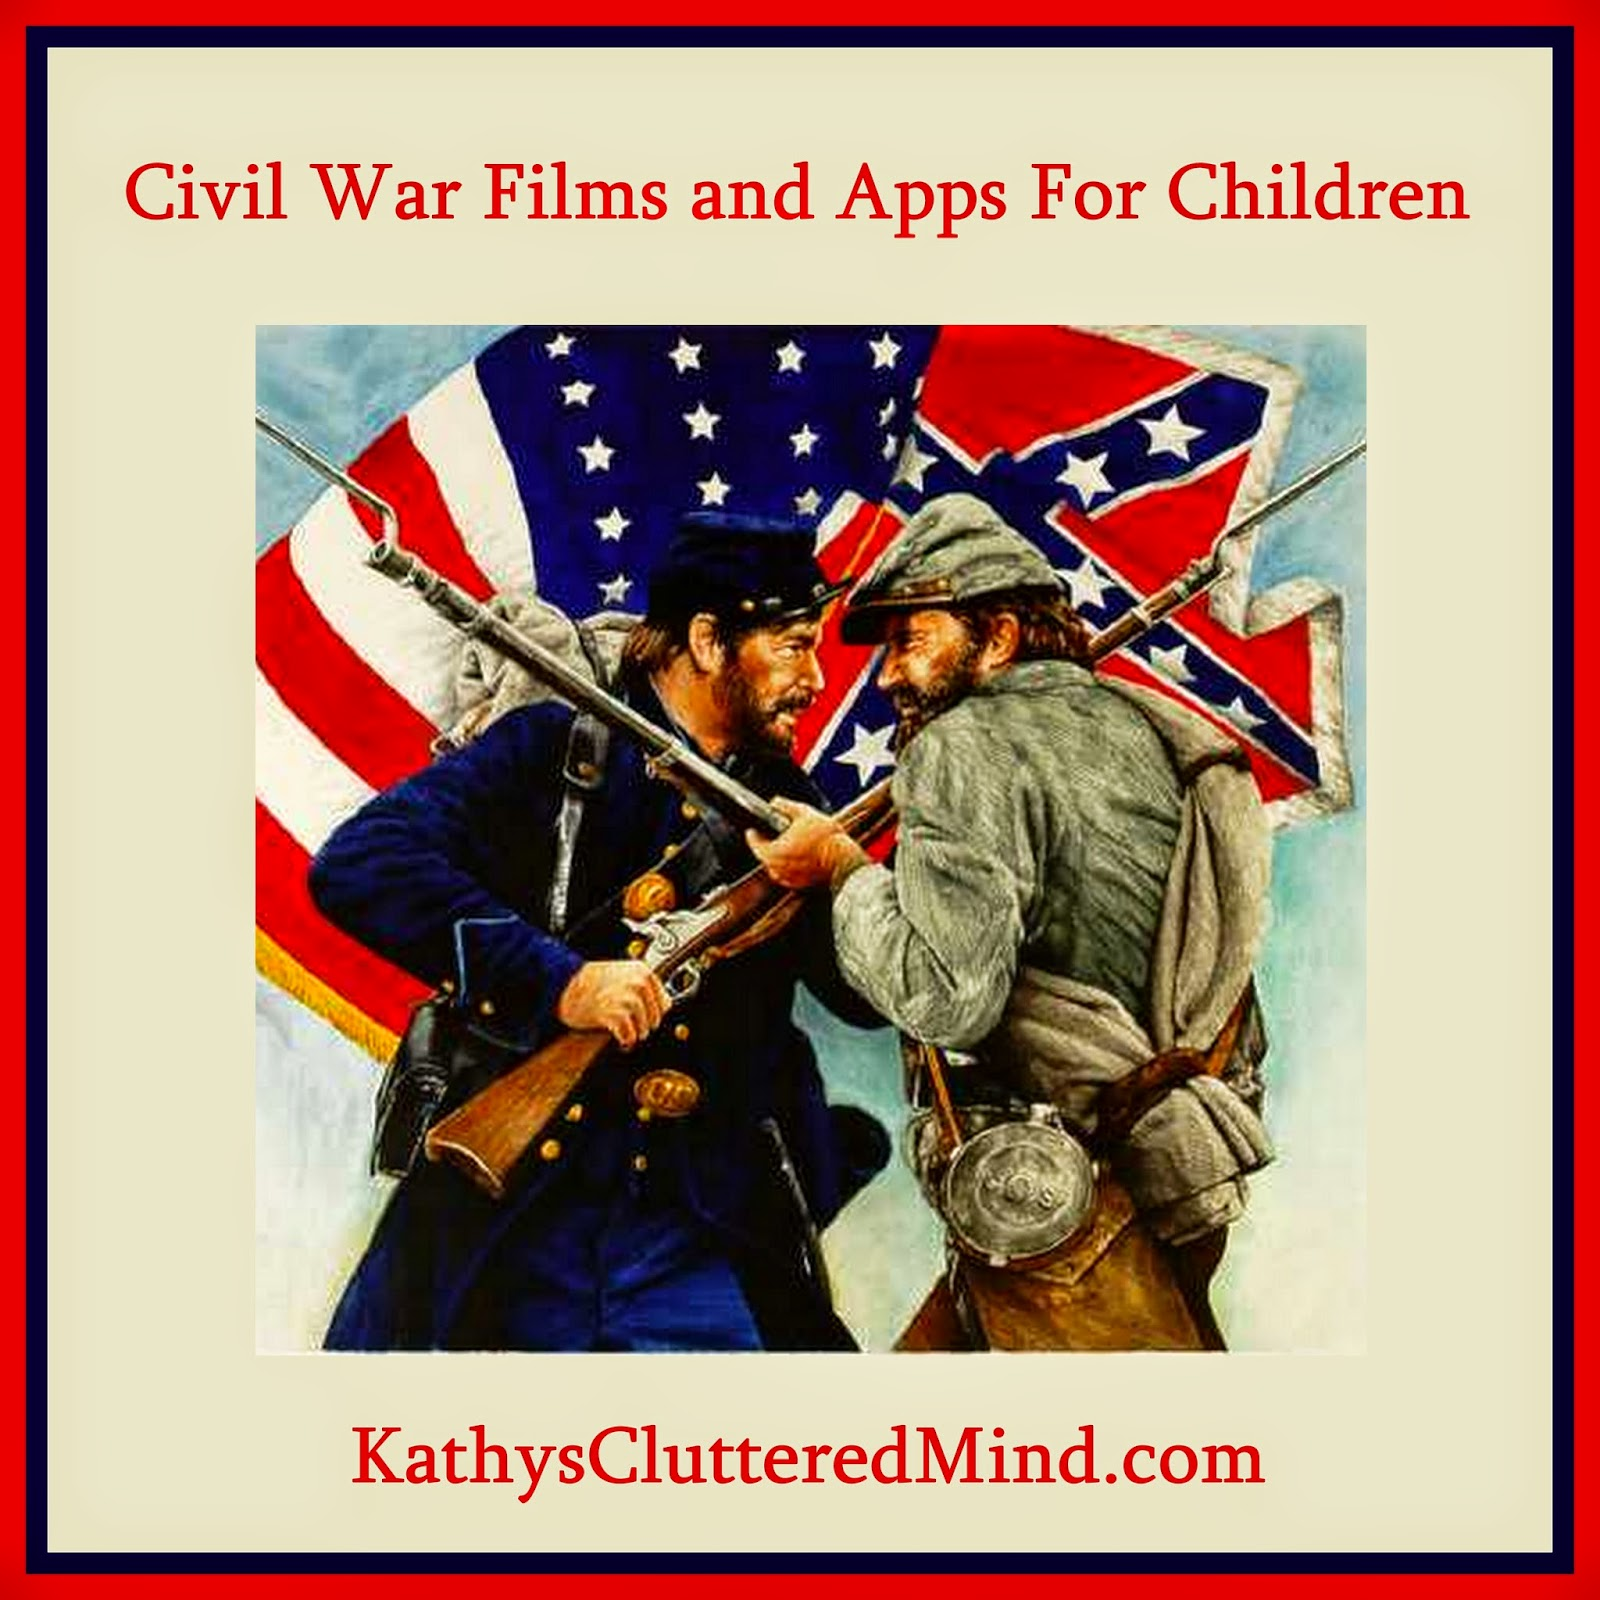 small resolution of Kathys Cluttered Mind: Civil War Films and Apps For Children